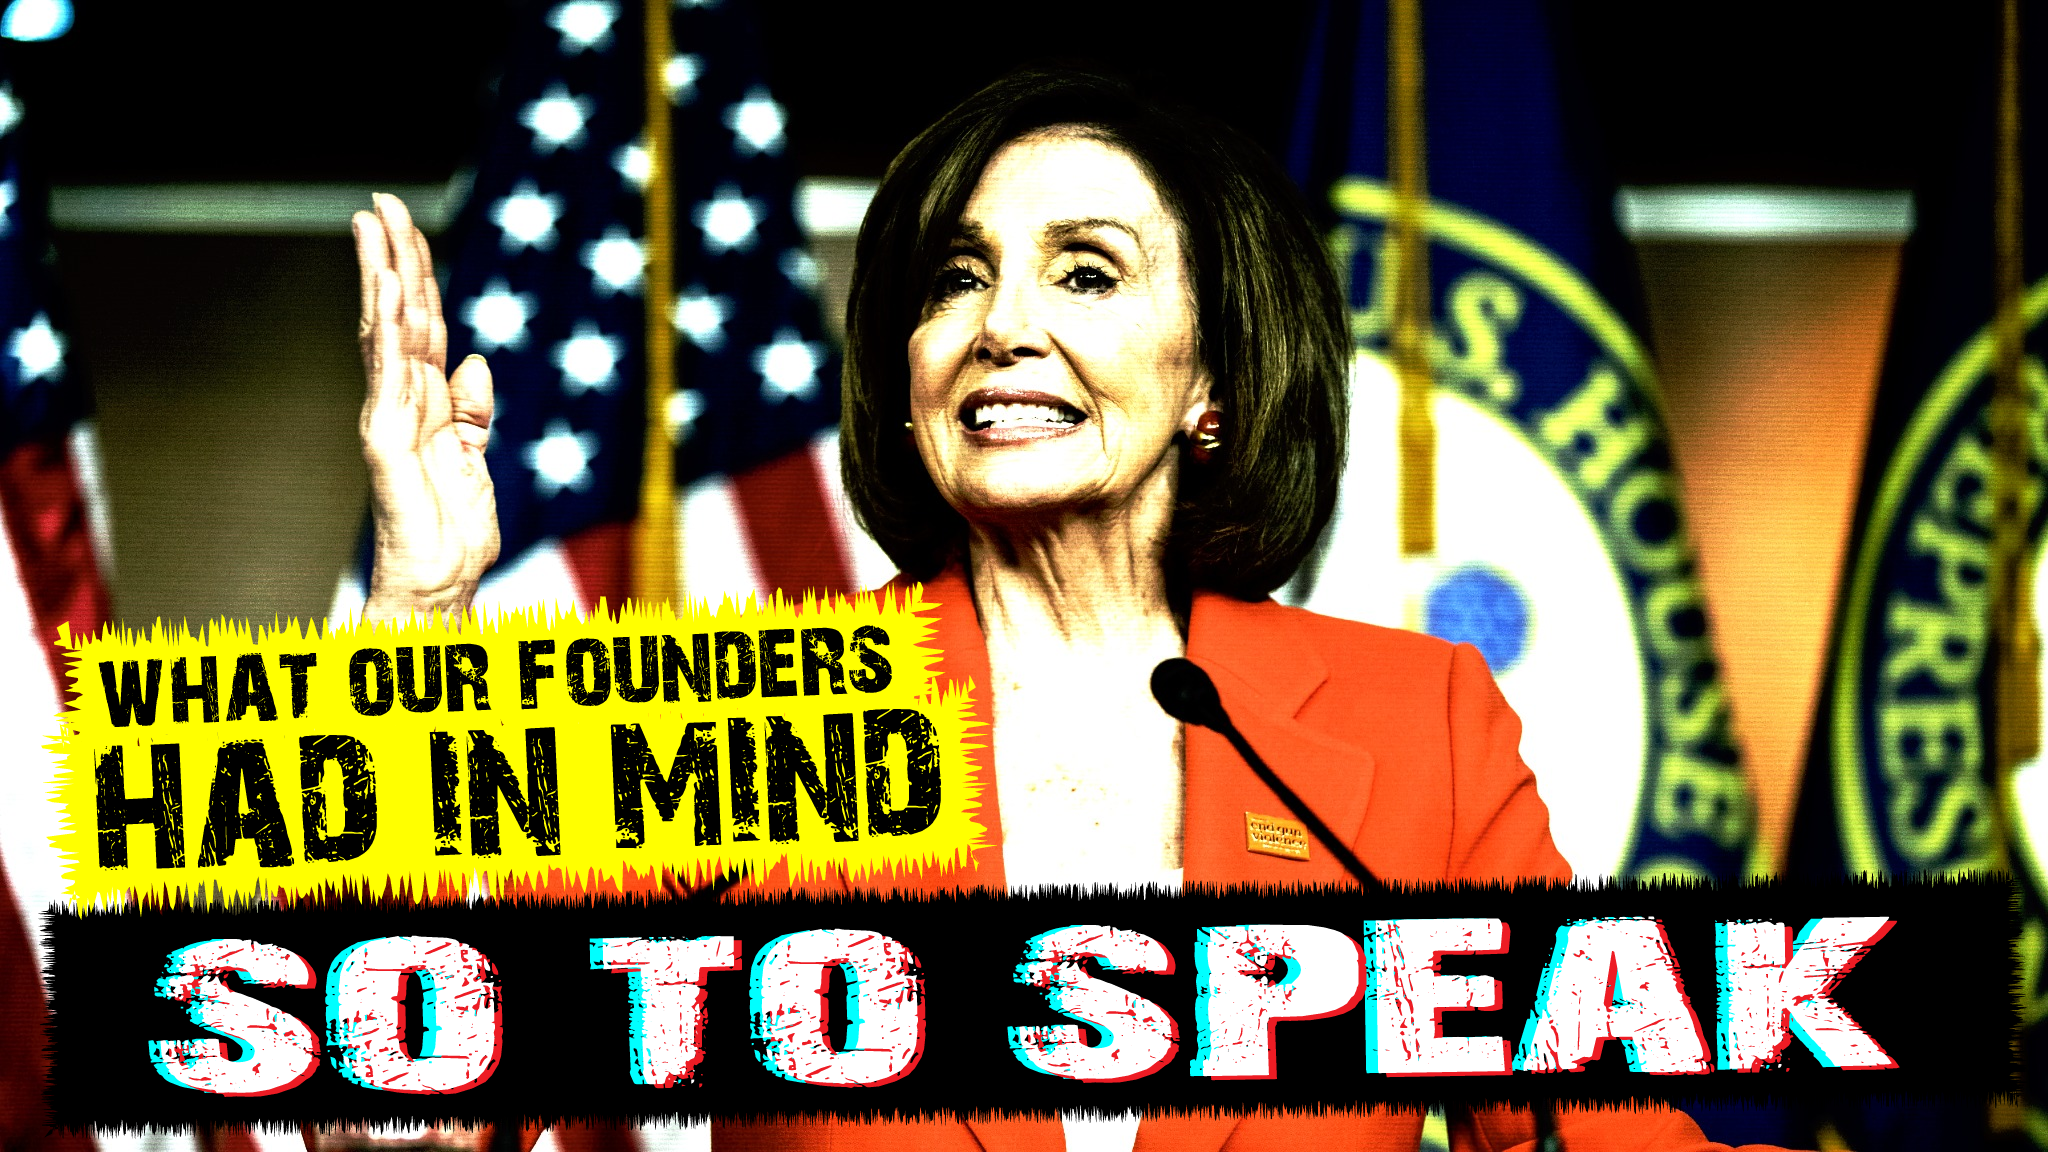 Nancy pelosi, constitutional scholar, schools americans on what the founders had in mind